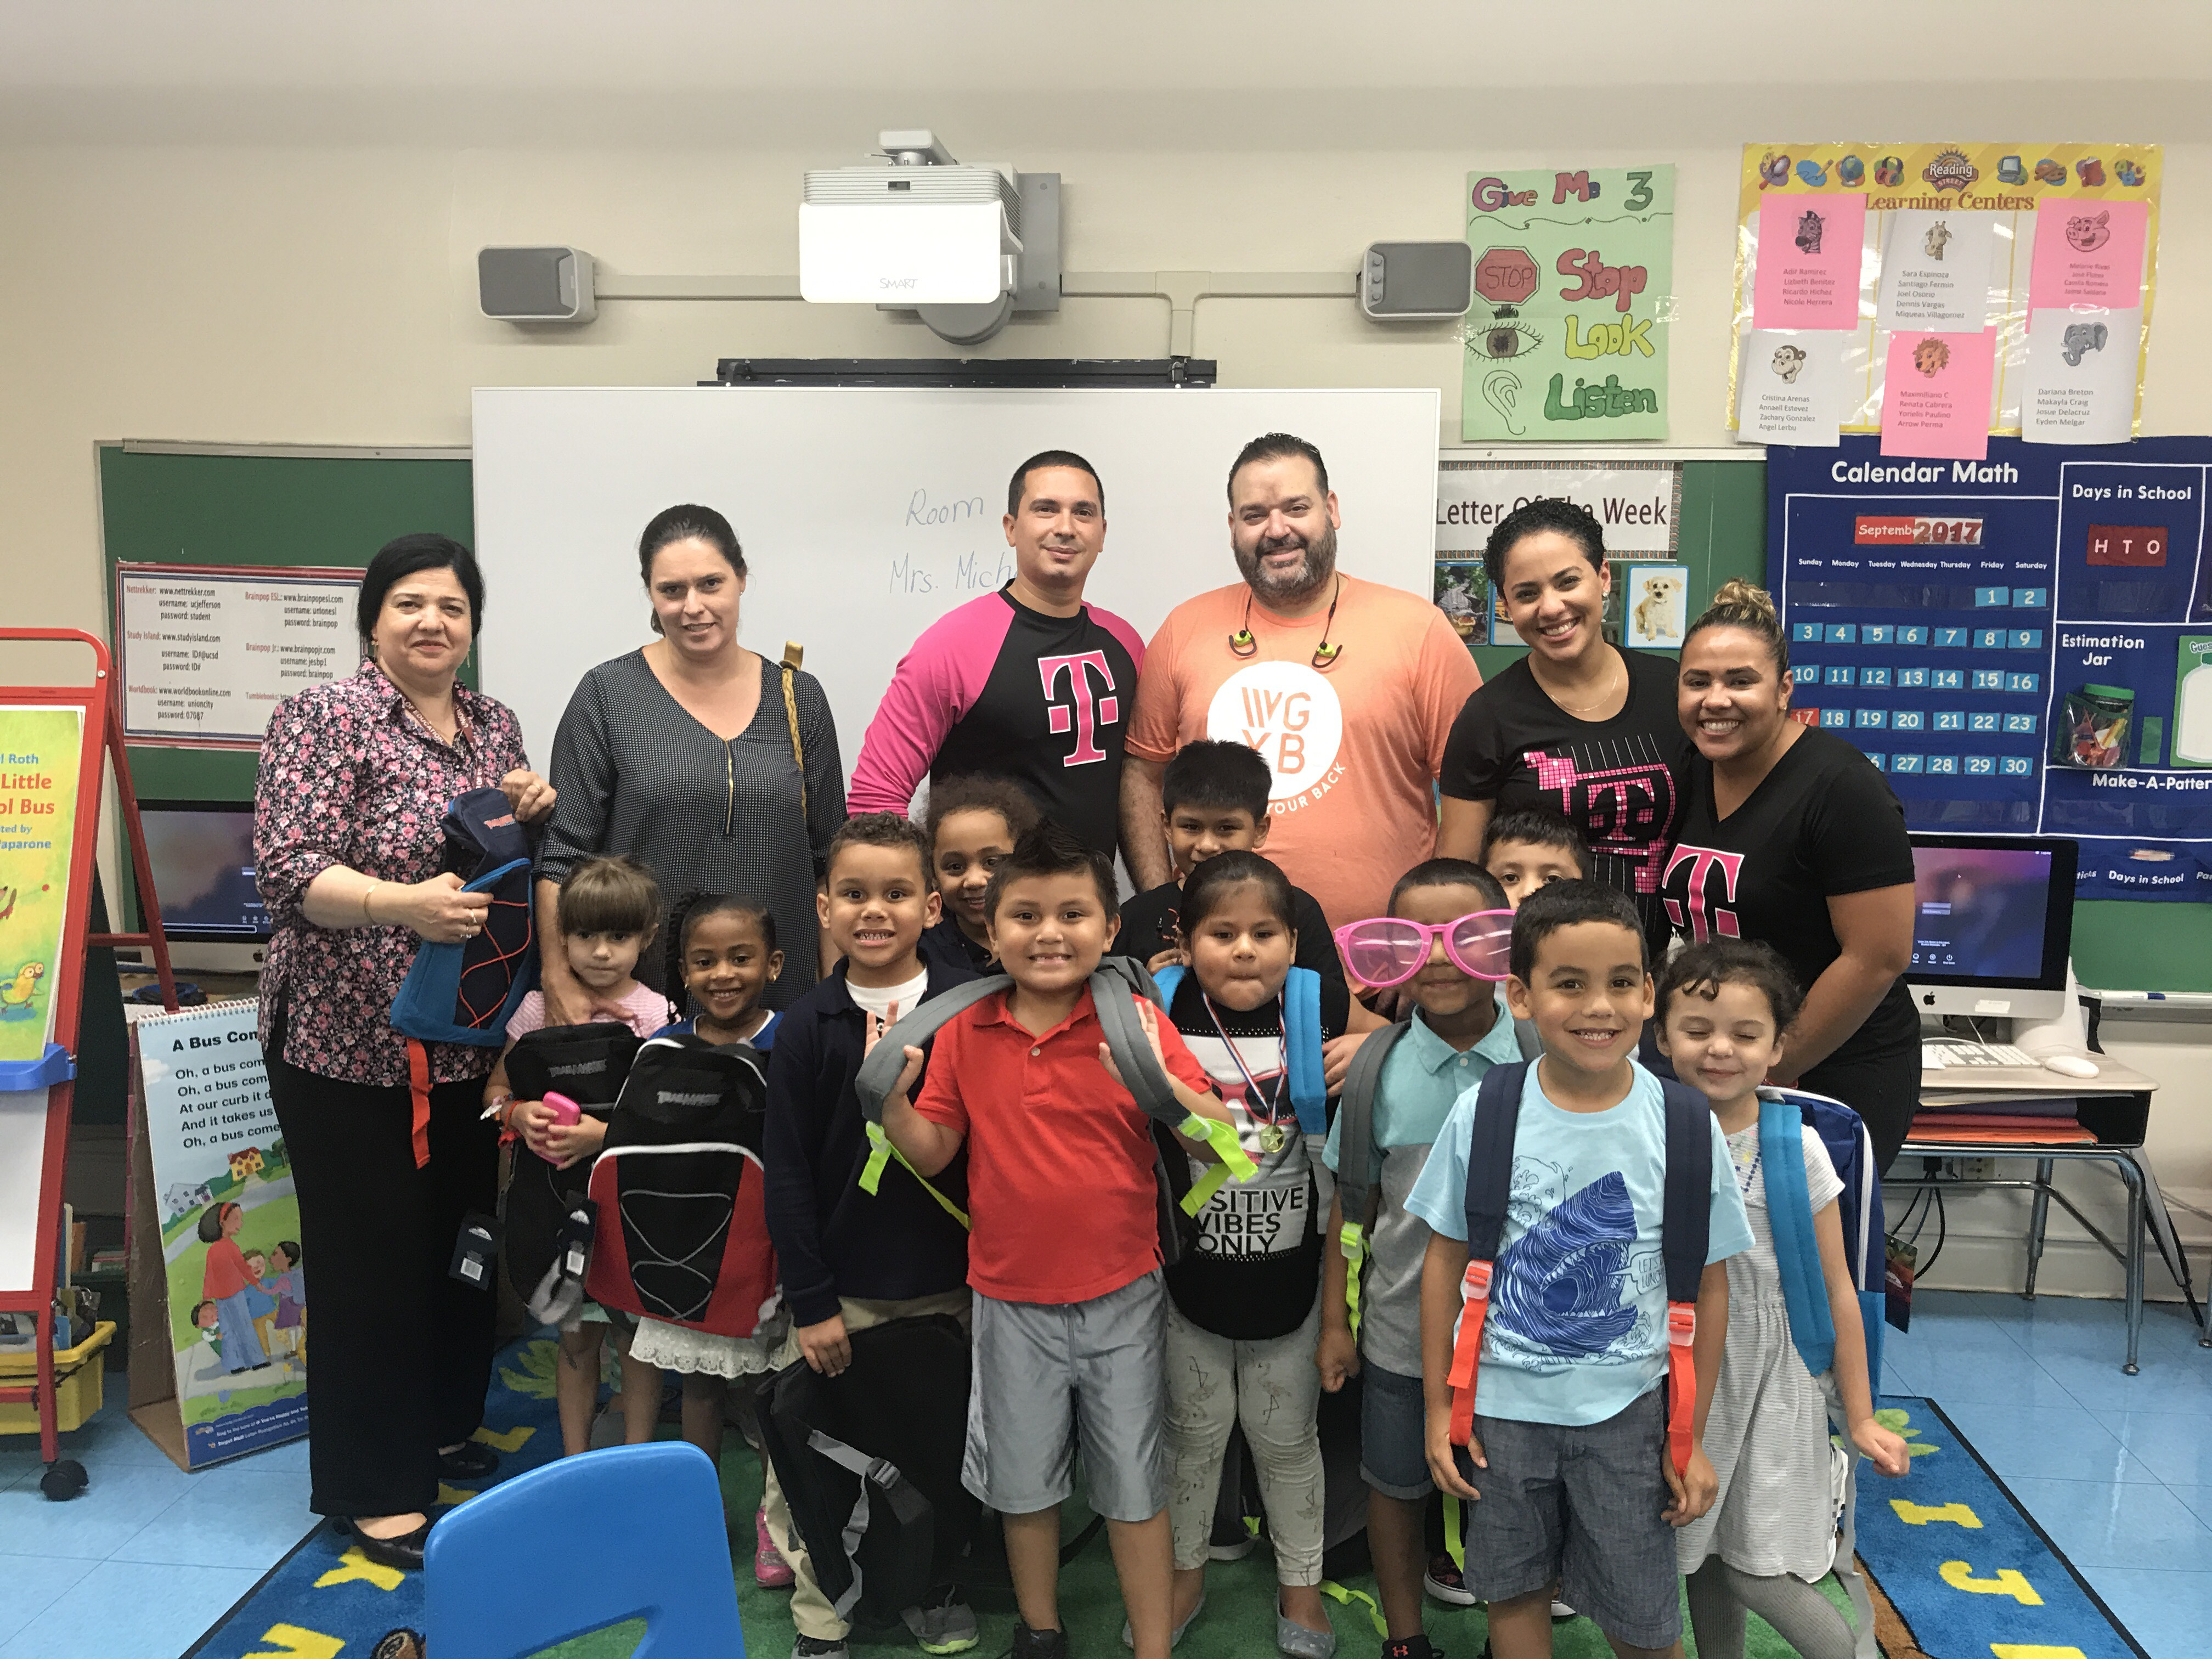 Tmobile representatives with students who received free backpacks